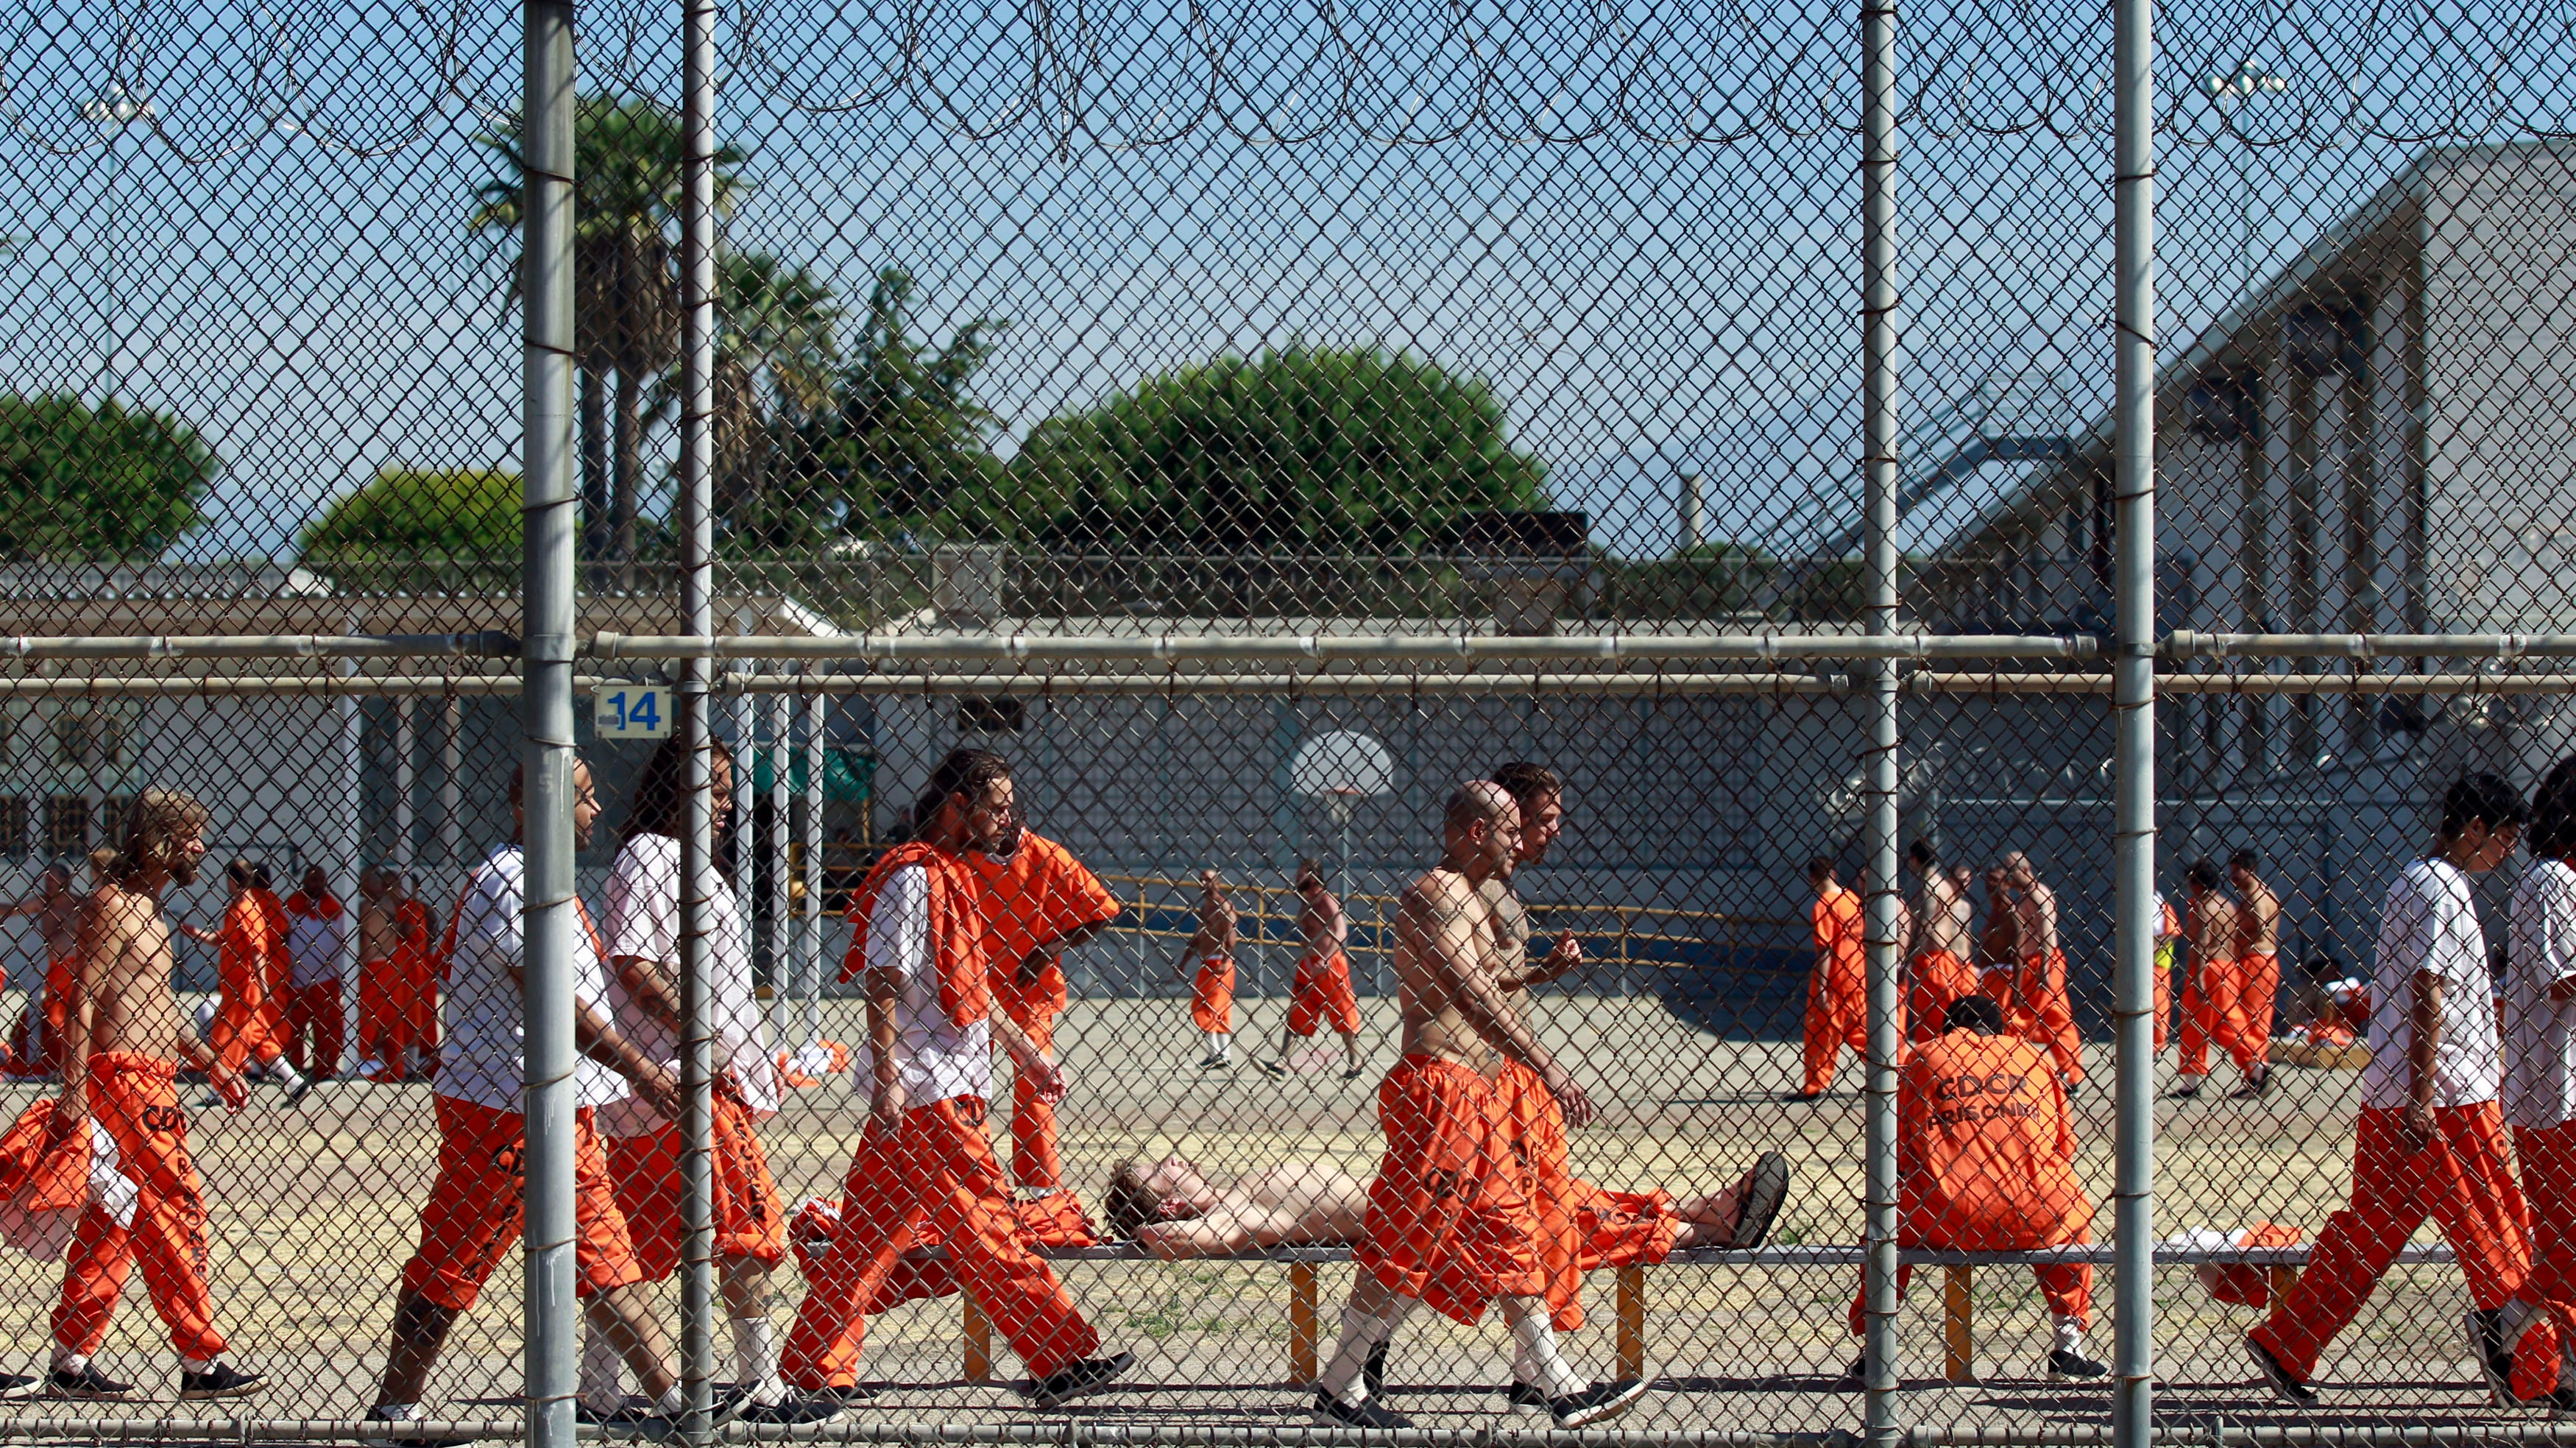 state and federal prisons Where is it worse to be imprisoned, in a us state or a federal prison why there so many more people in state prisons than in federal prisons in the united states.